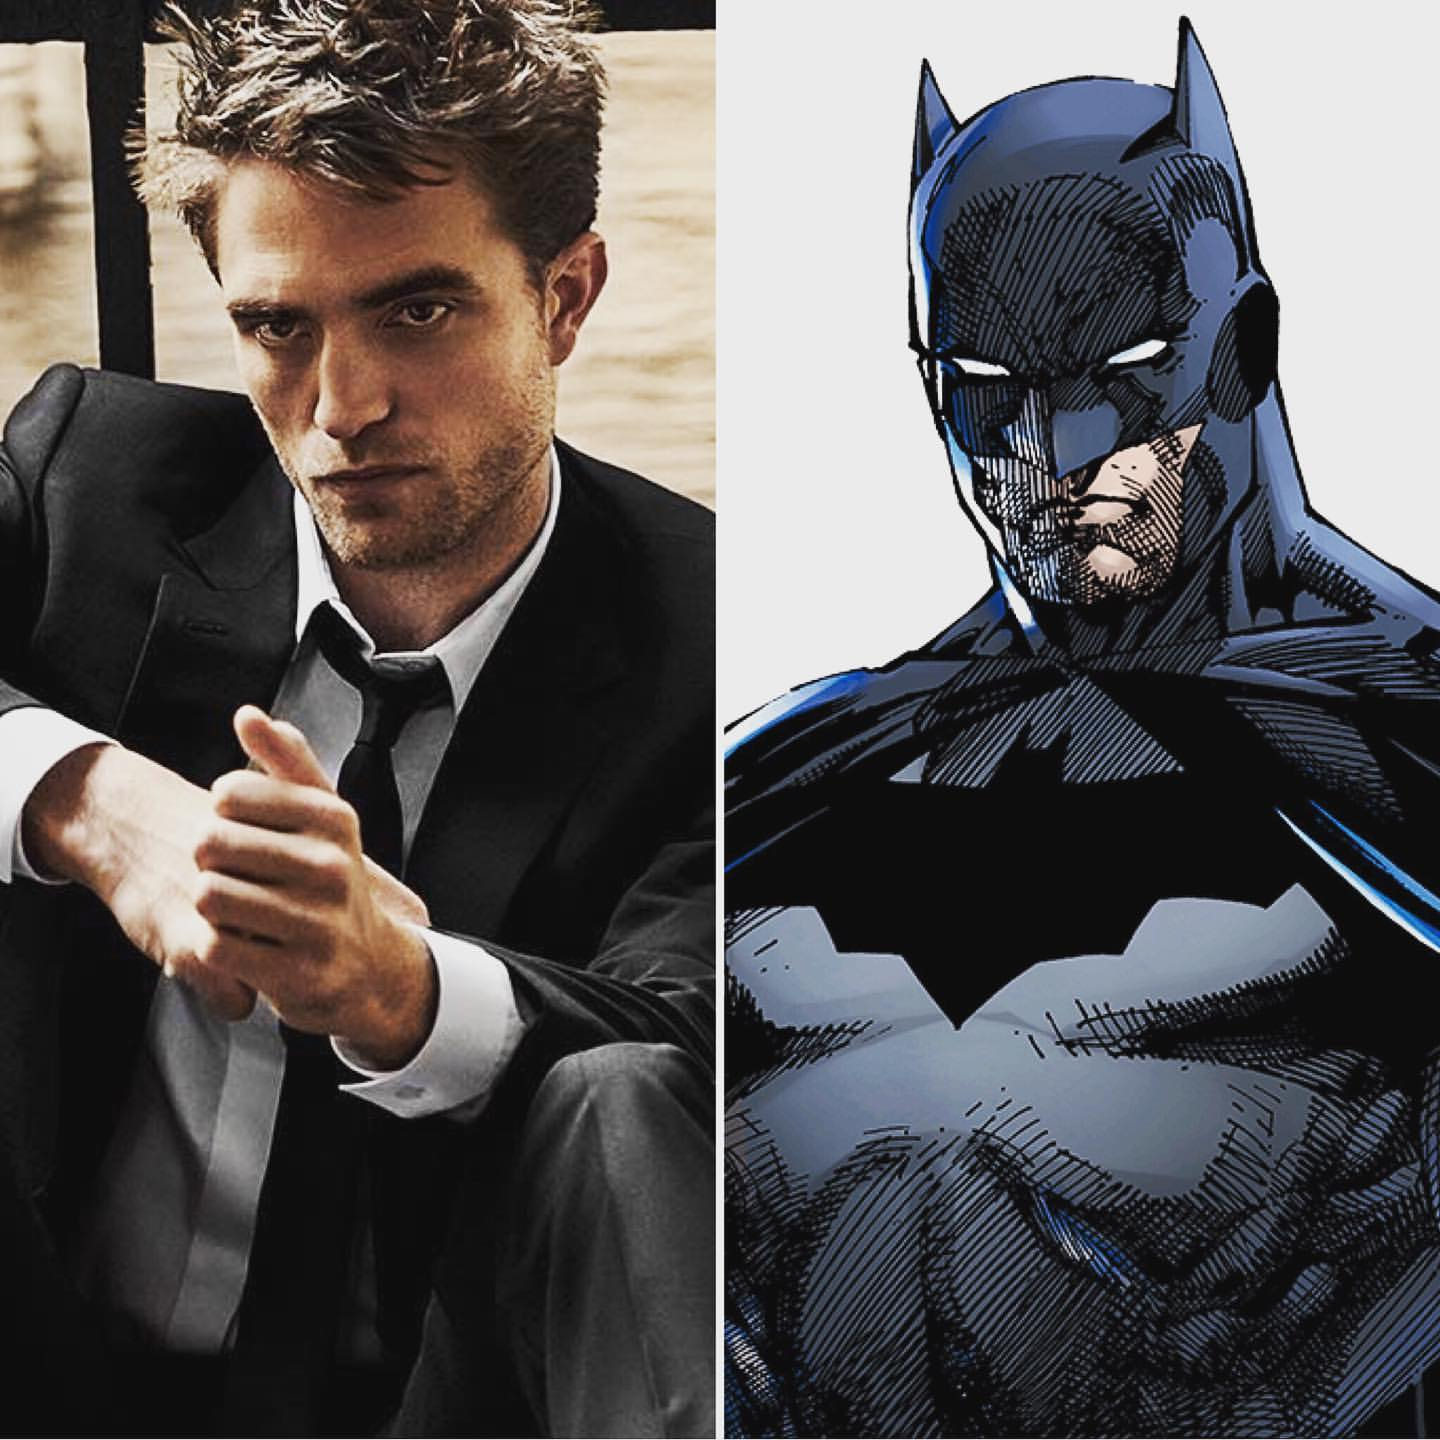 Robert Pattinson in negotiations to play titular hero in Matt Reeves' 'The Batman'